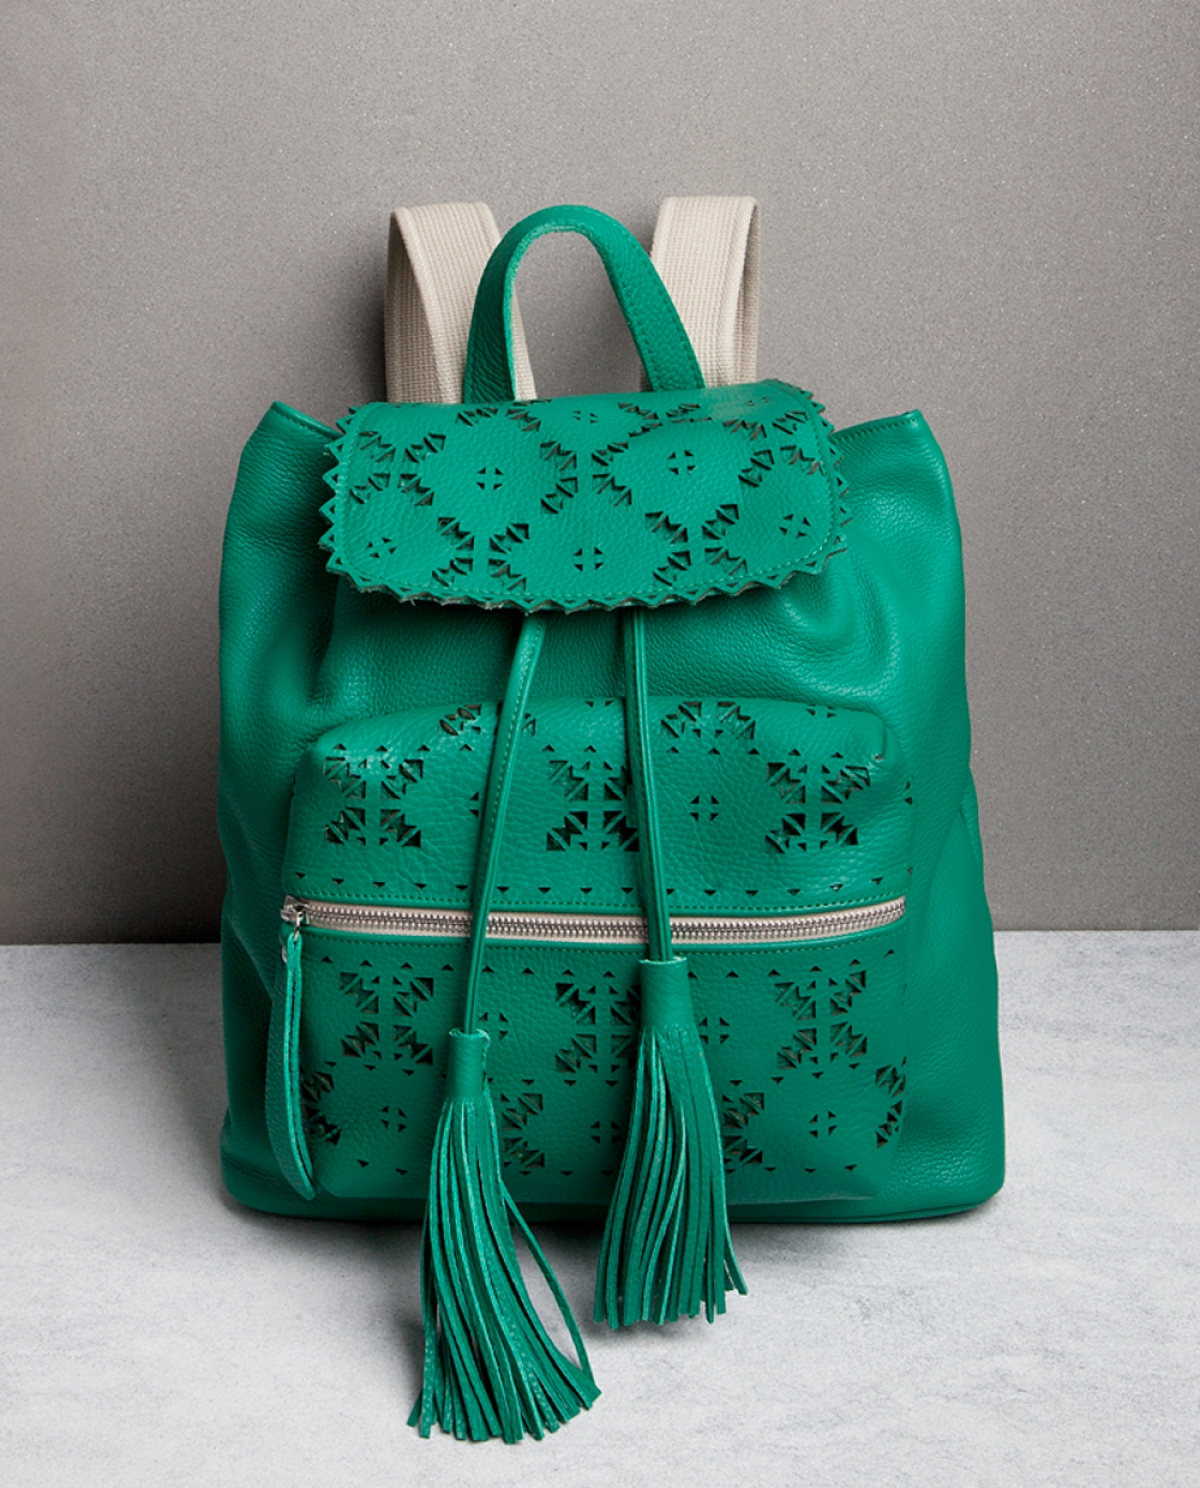 Green Laser-cut Leather Backpack